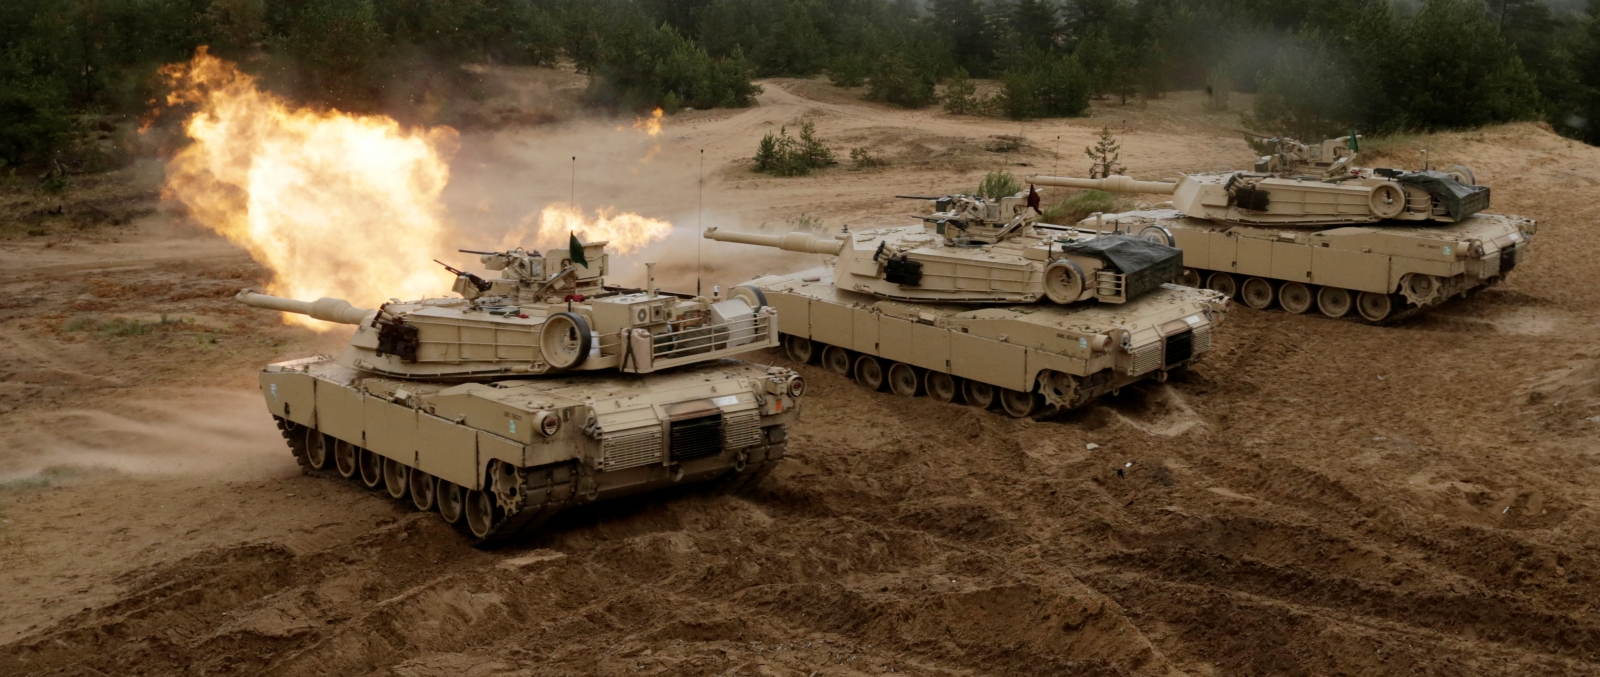 US army uses cyberwarfare to dismantle simulated tank attack